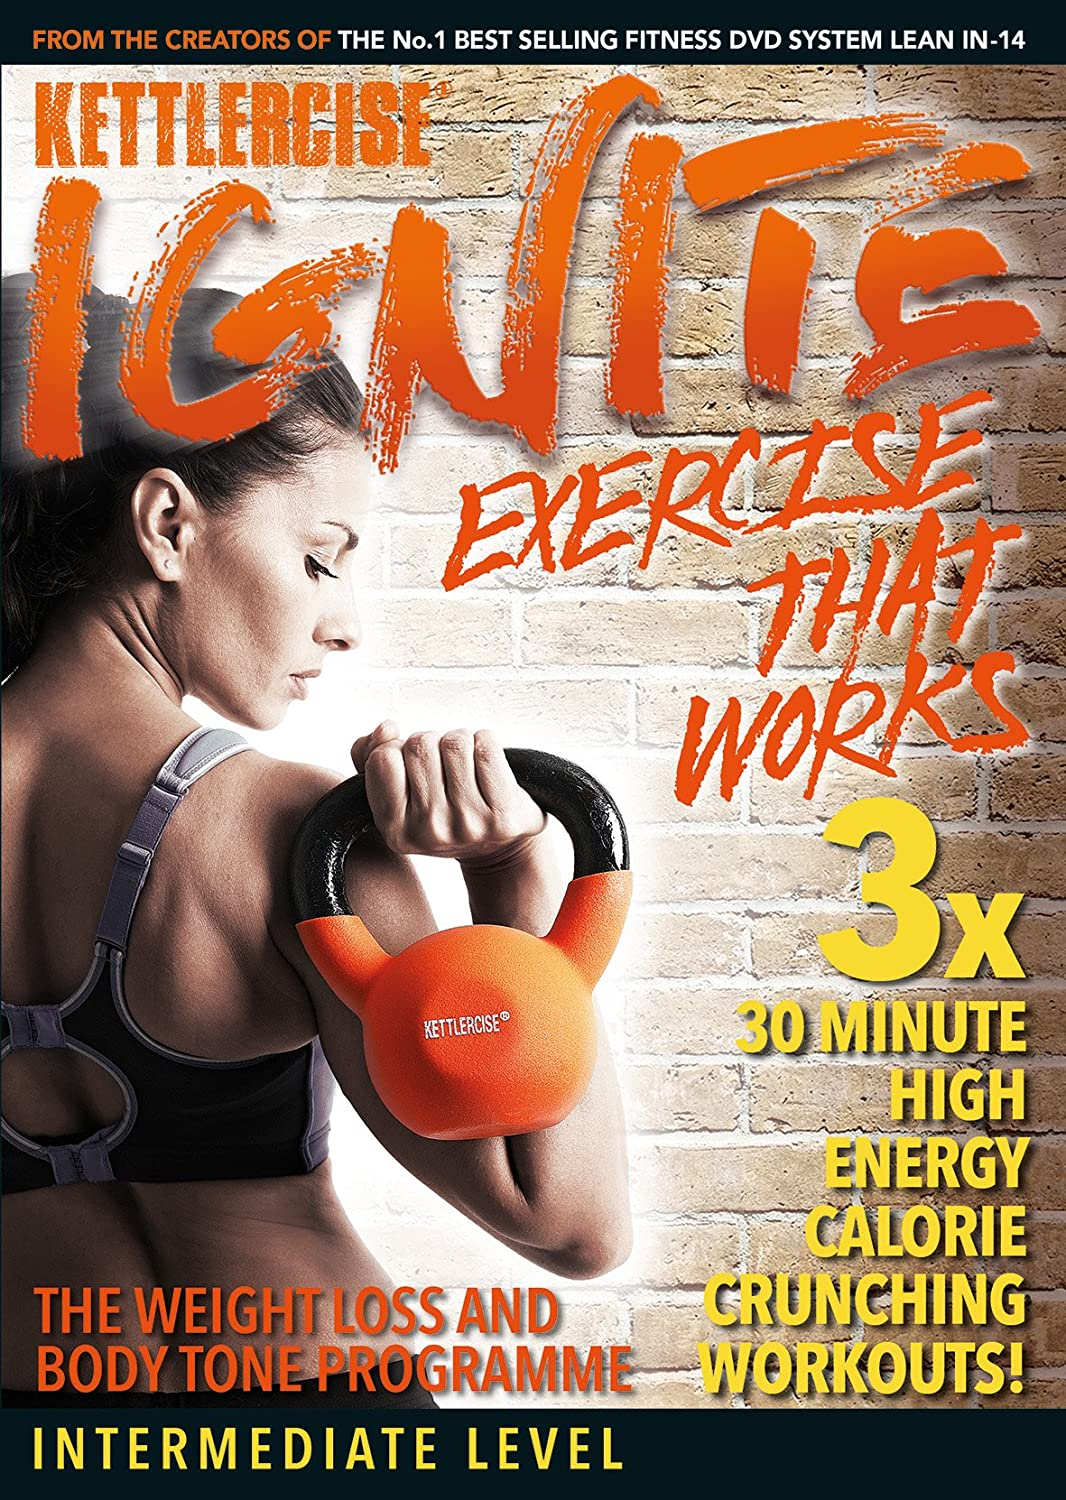 https://www.kettlercise.com/kettlercise-shop/product/8388-ignite-dvd/category_pathway-55